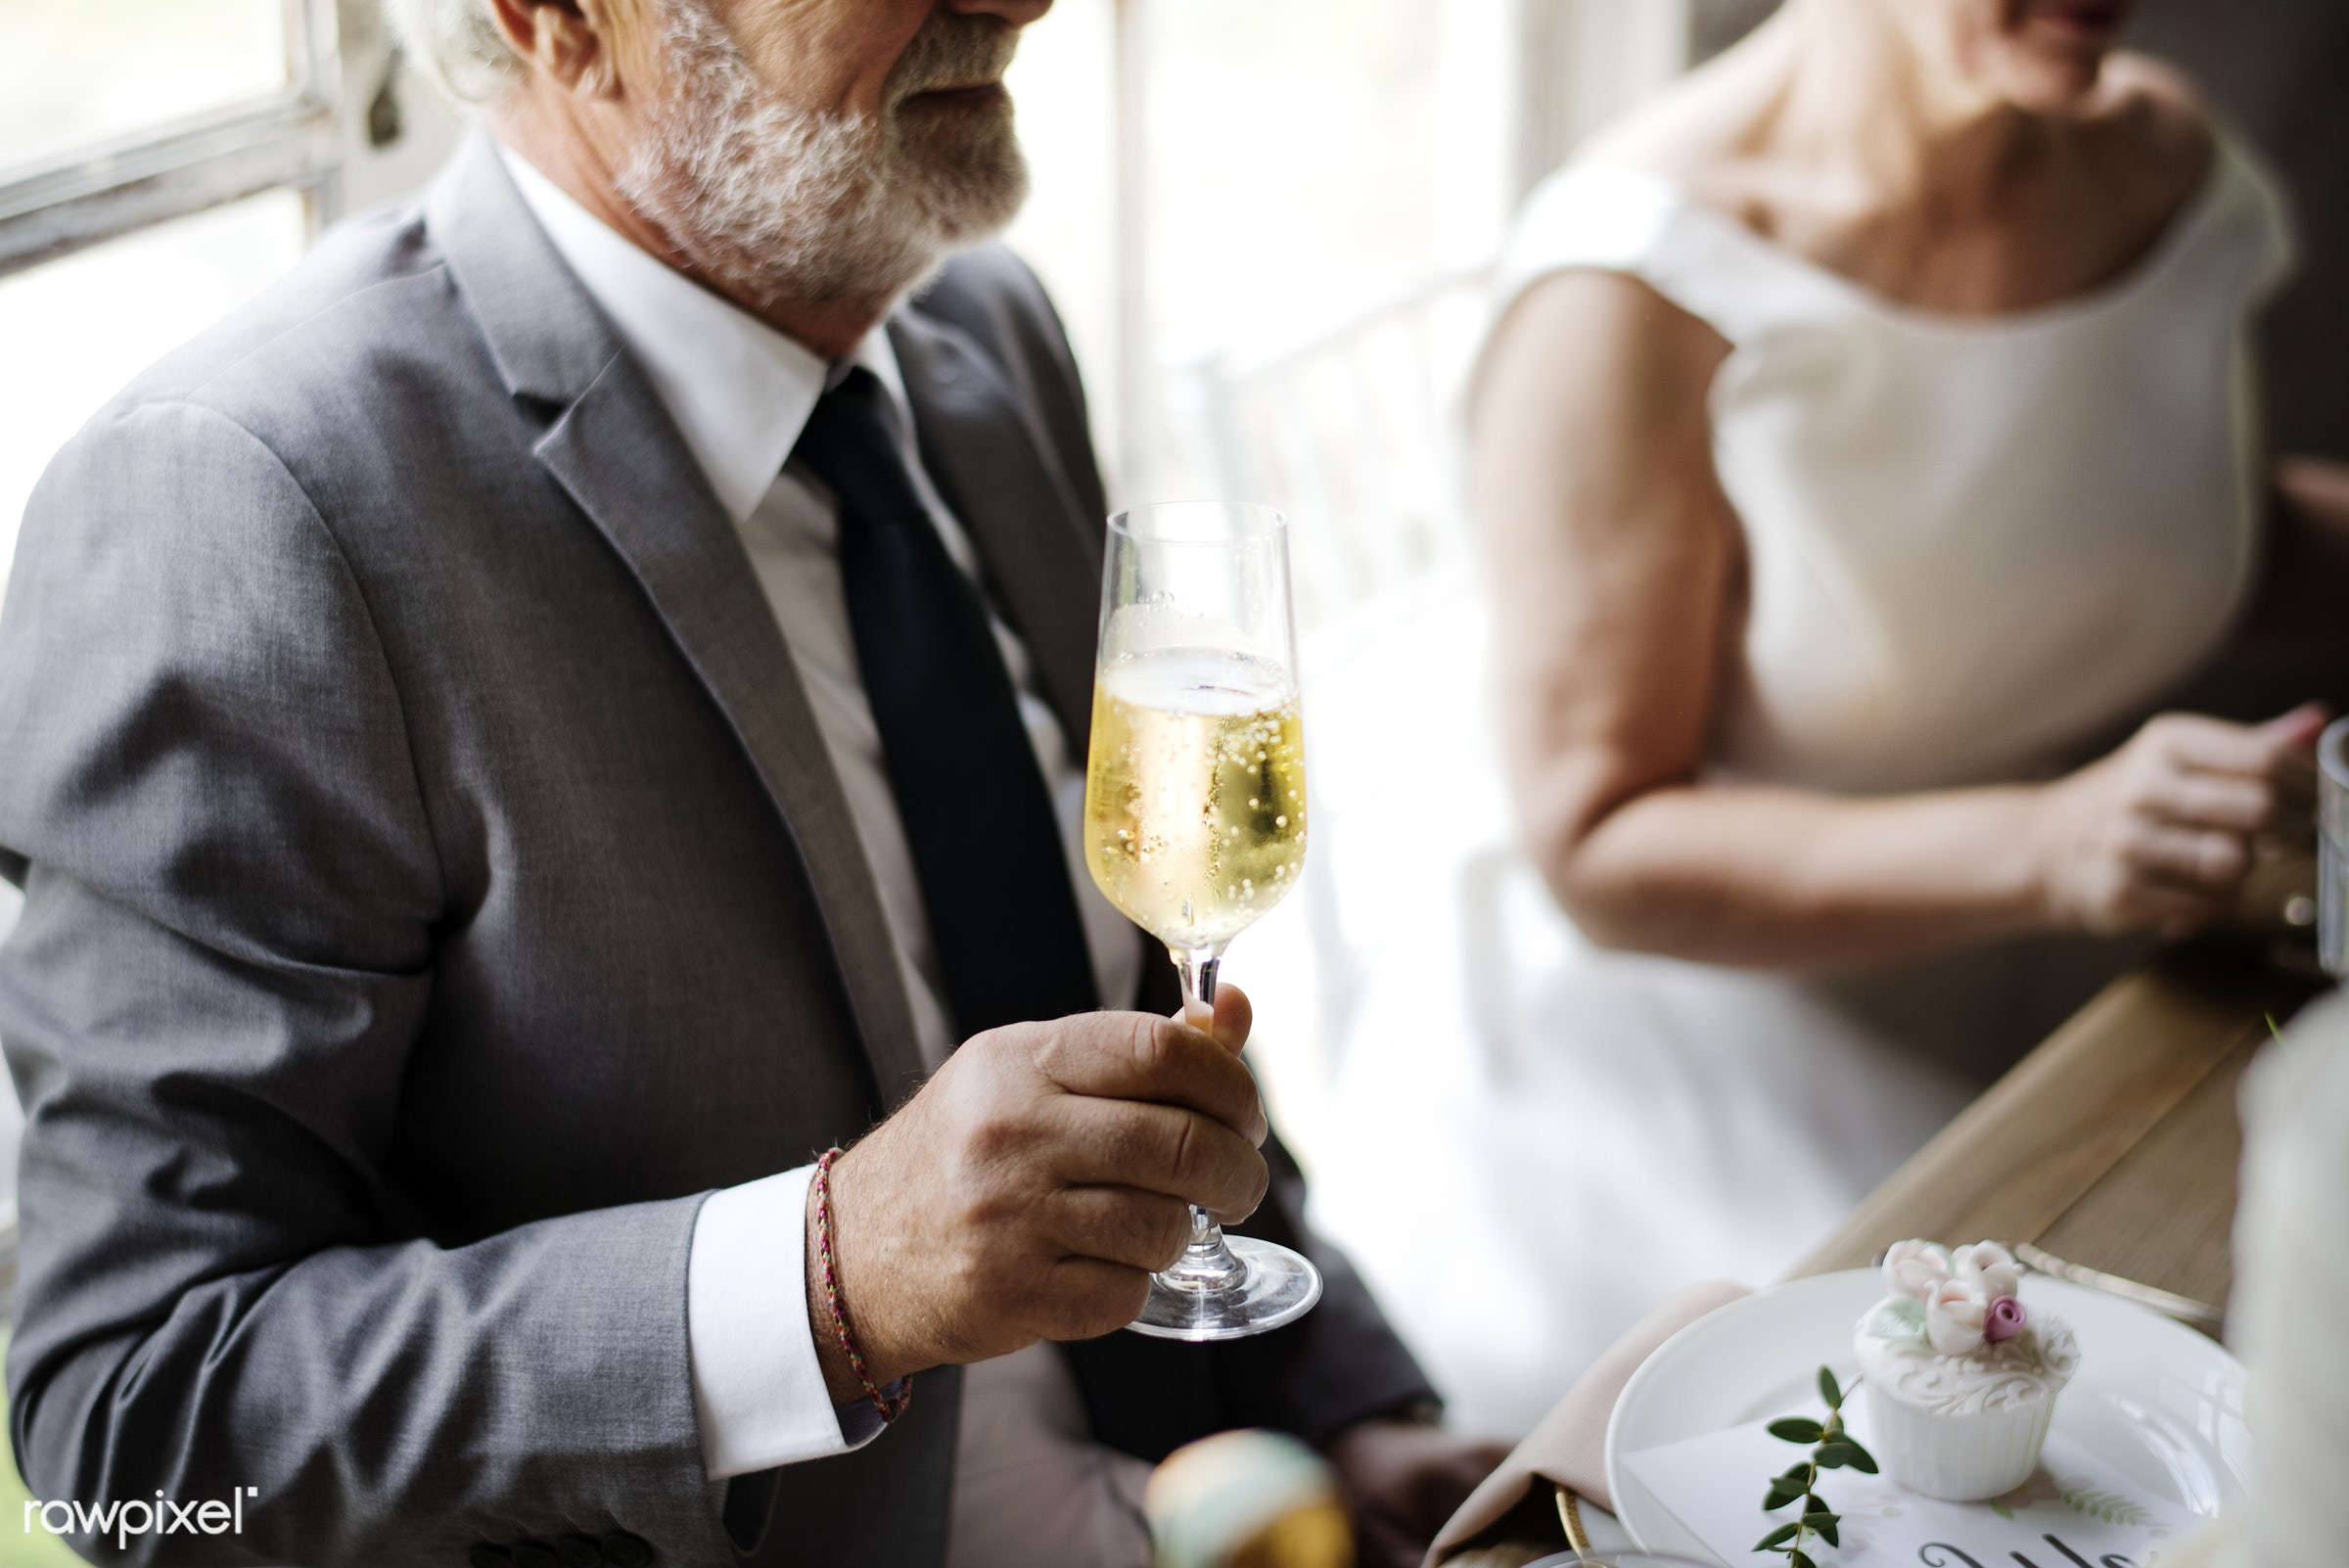 person, holding, occasion, caucasian, married, congrats, hands, drink, glass, suits, cheerful, wine, cake, champagne,...